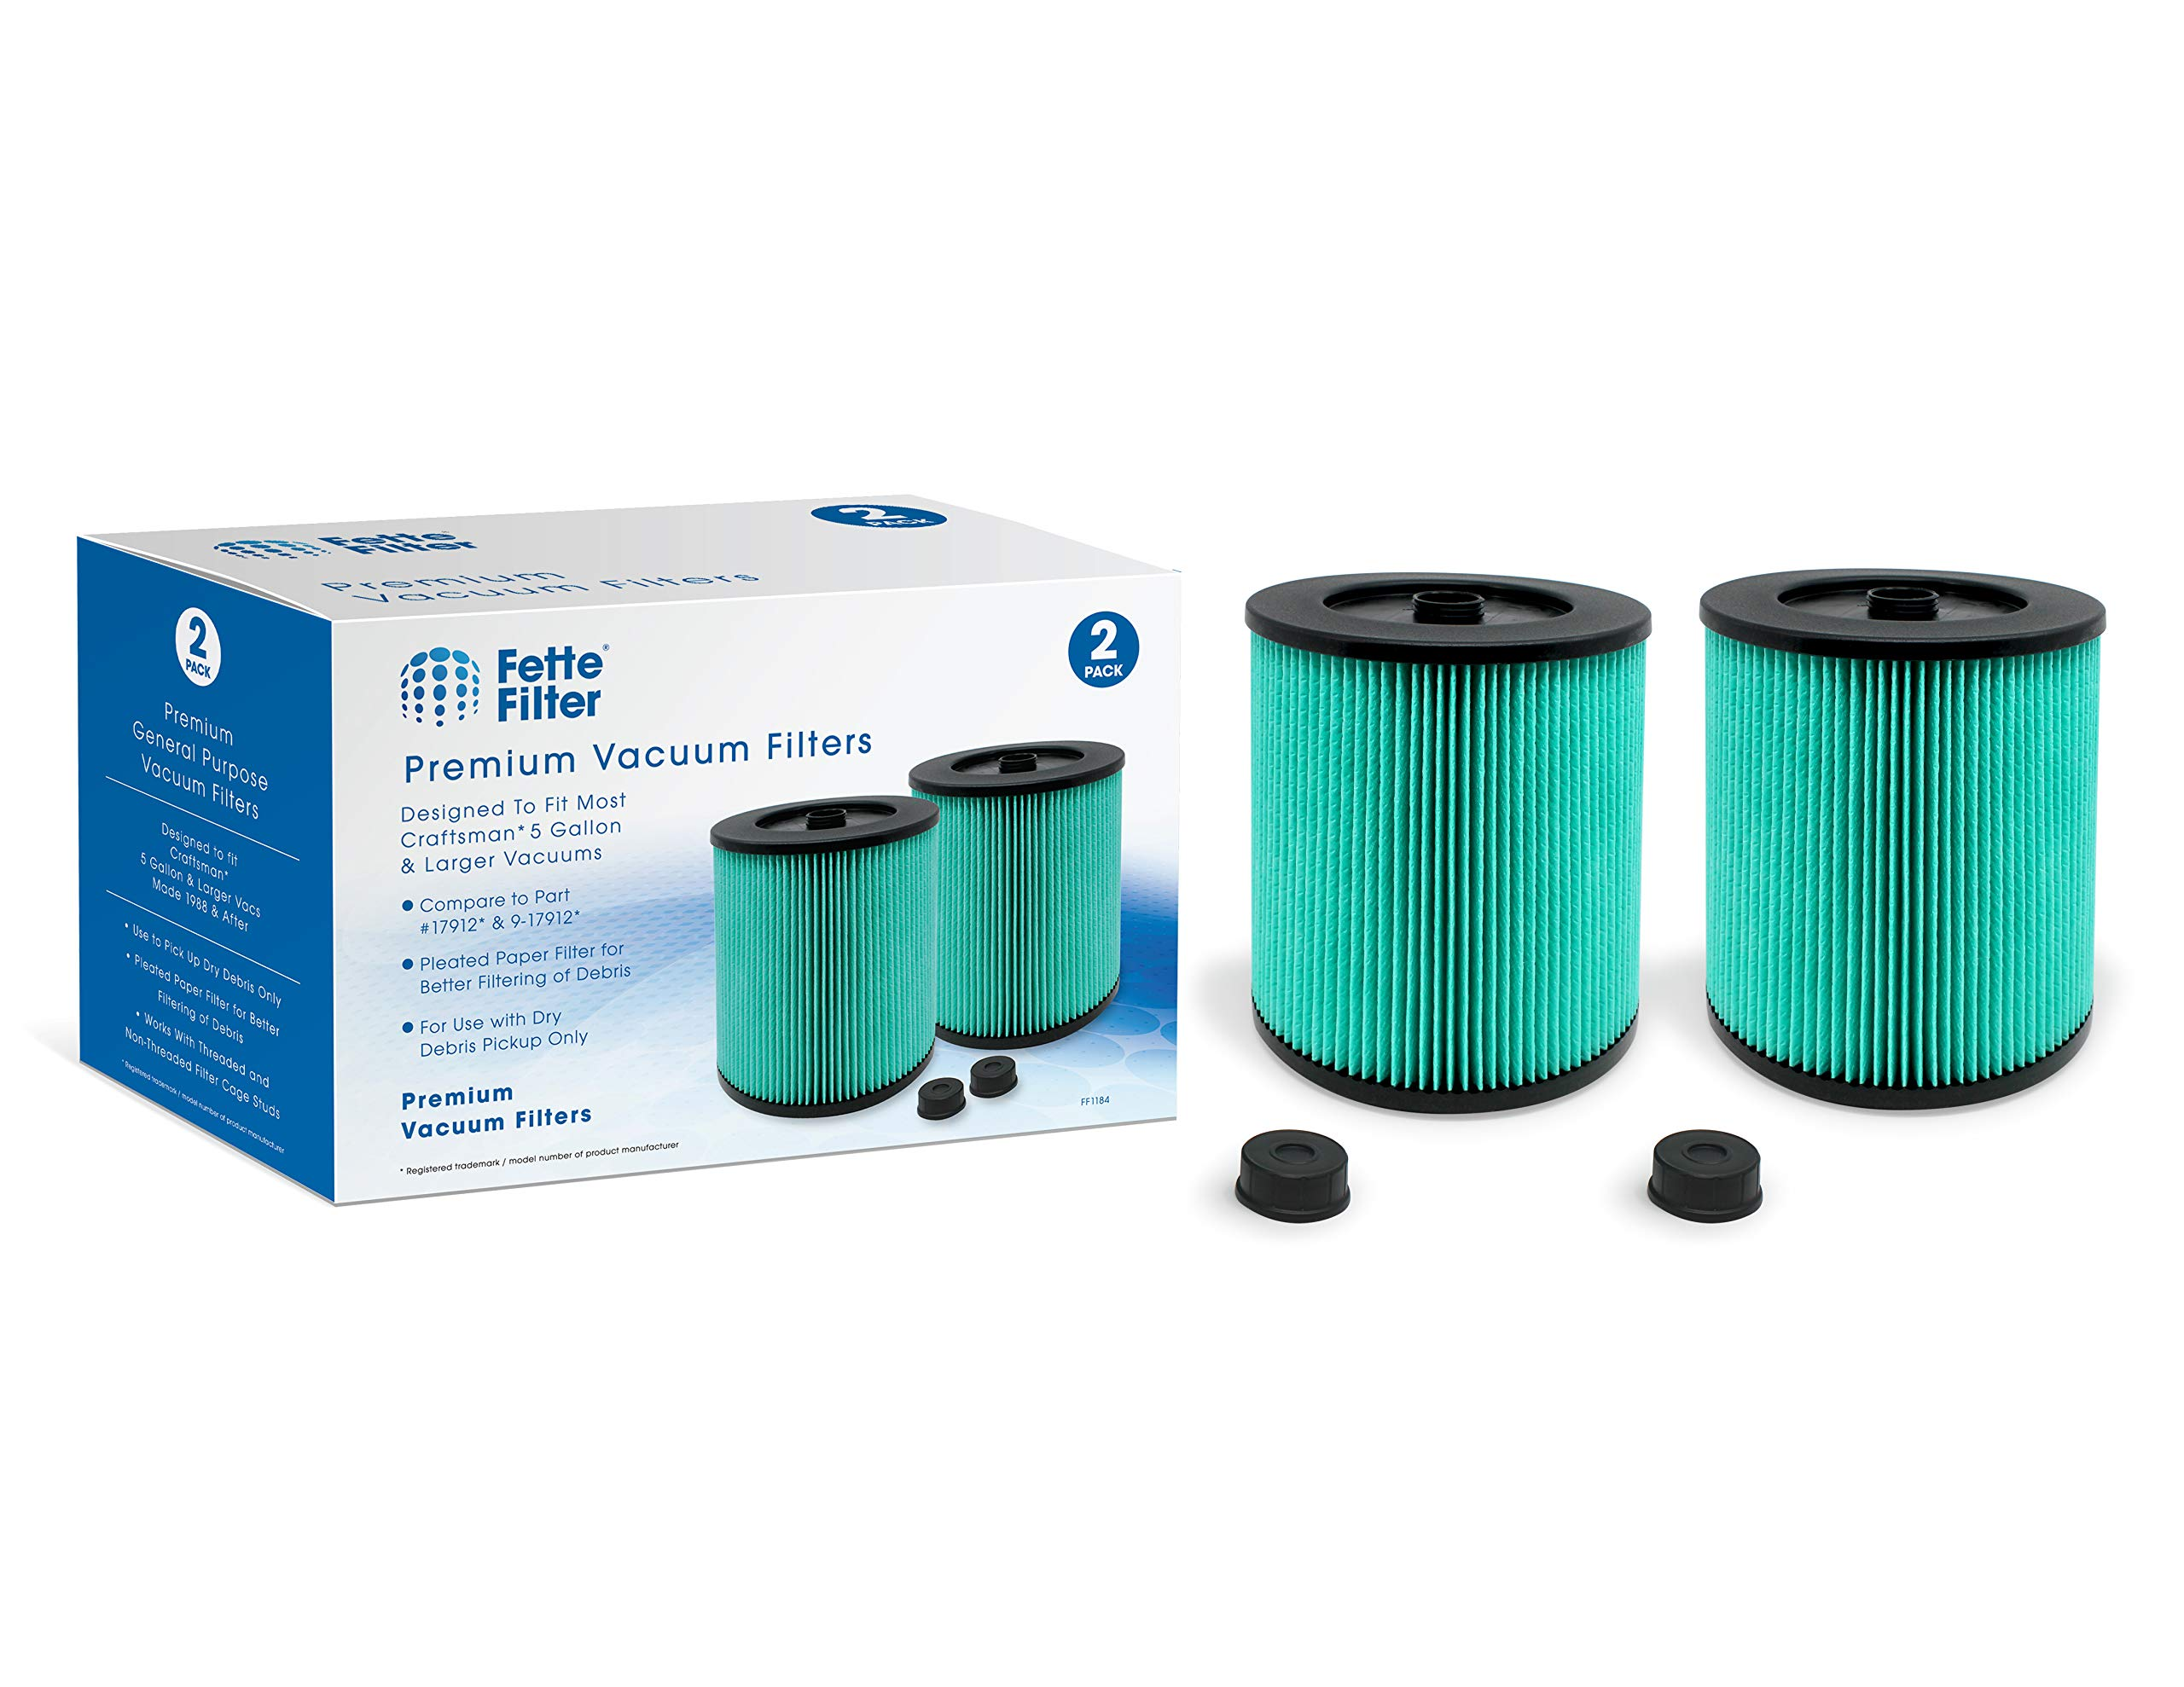 Fette Filter - 17912 & 9-17912 HEPA Vacuum Filter with High Efficiency Particle Air Filter Material Compatible with Craftsman. Compare to Part # 17912 & 9-17912. Pack of 2 by Fette Filter